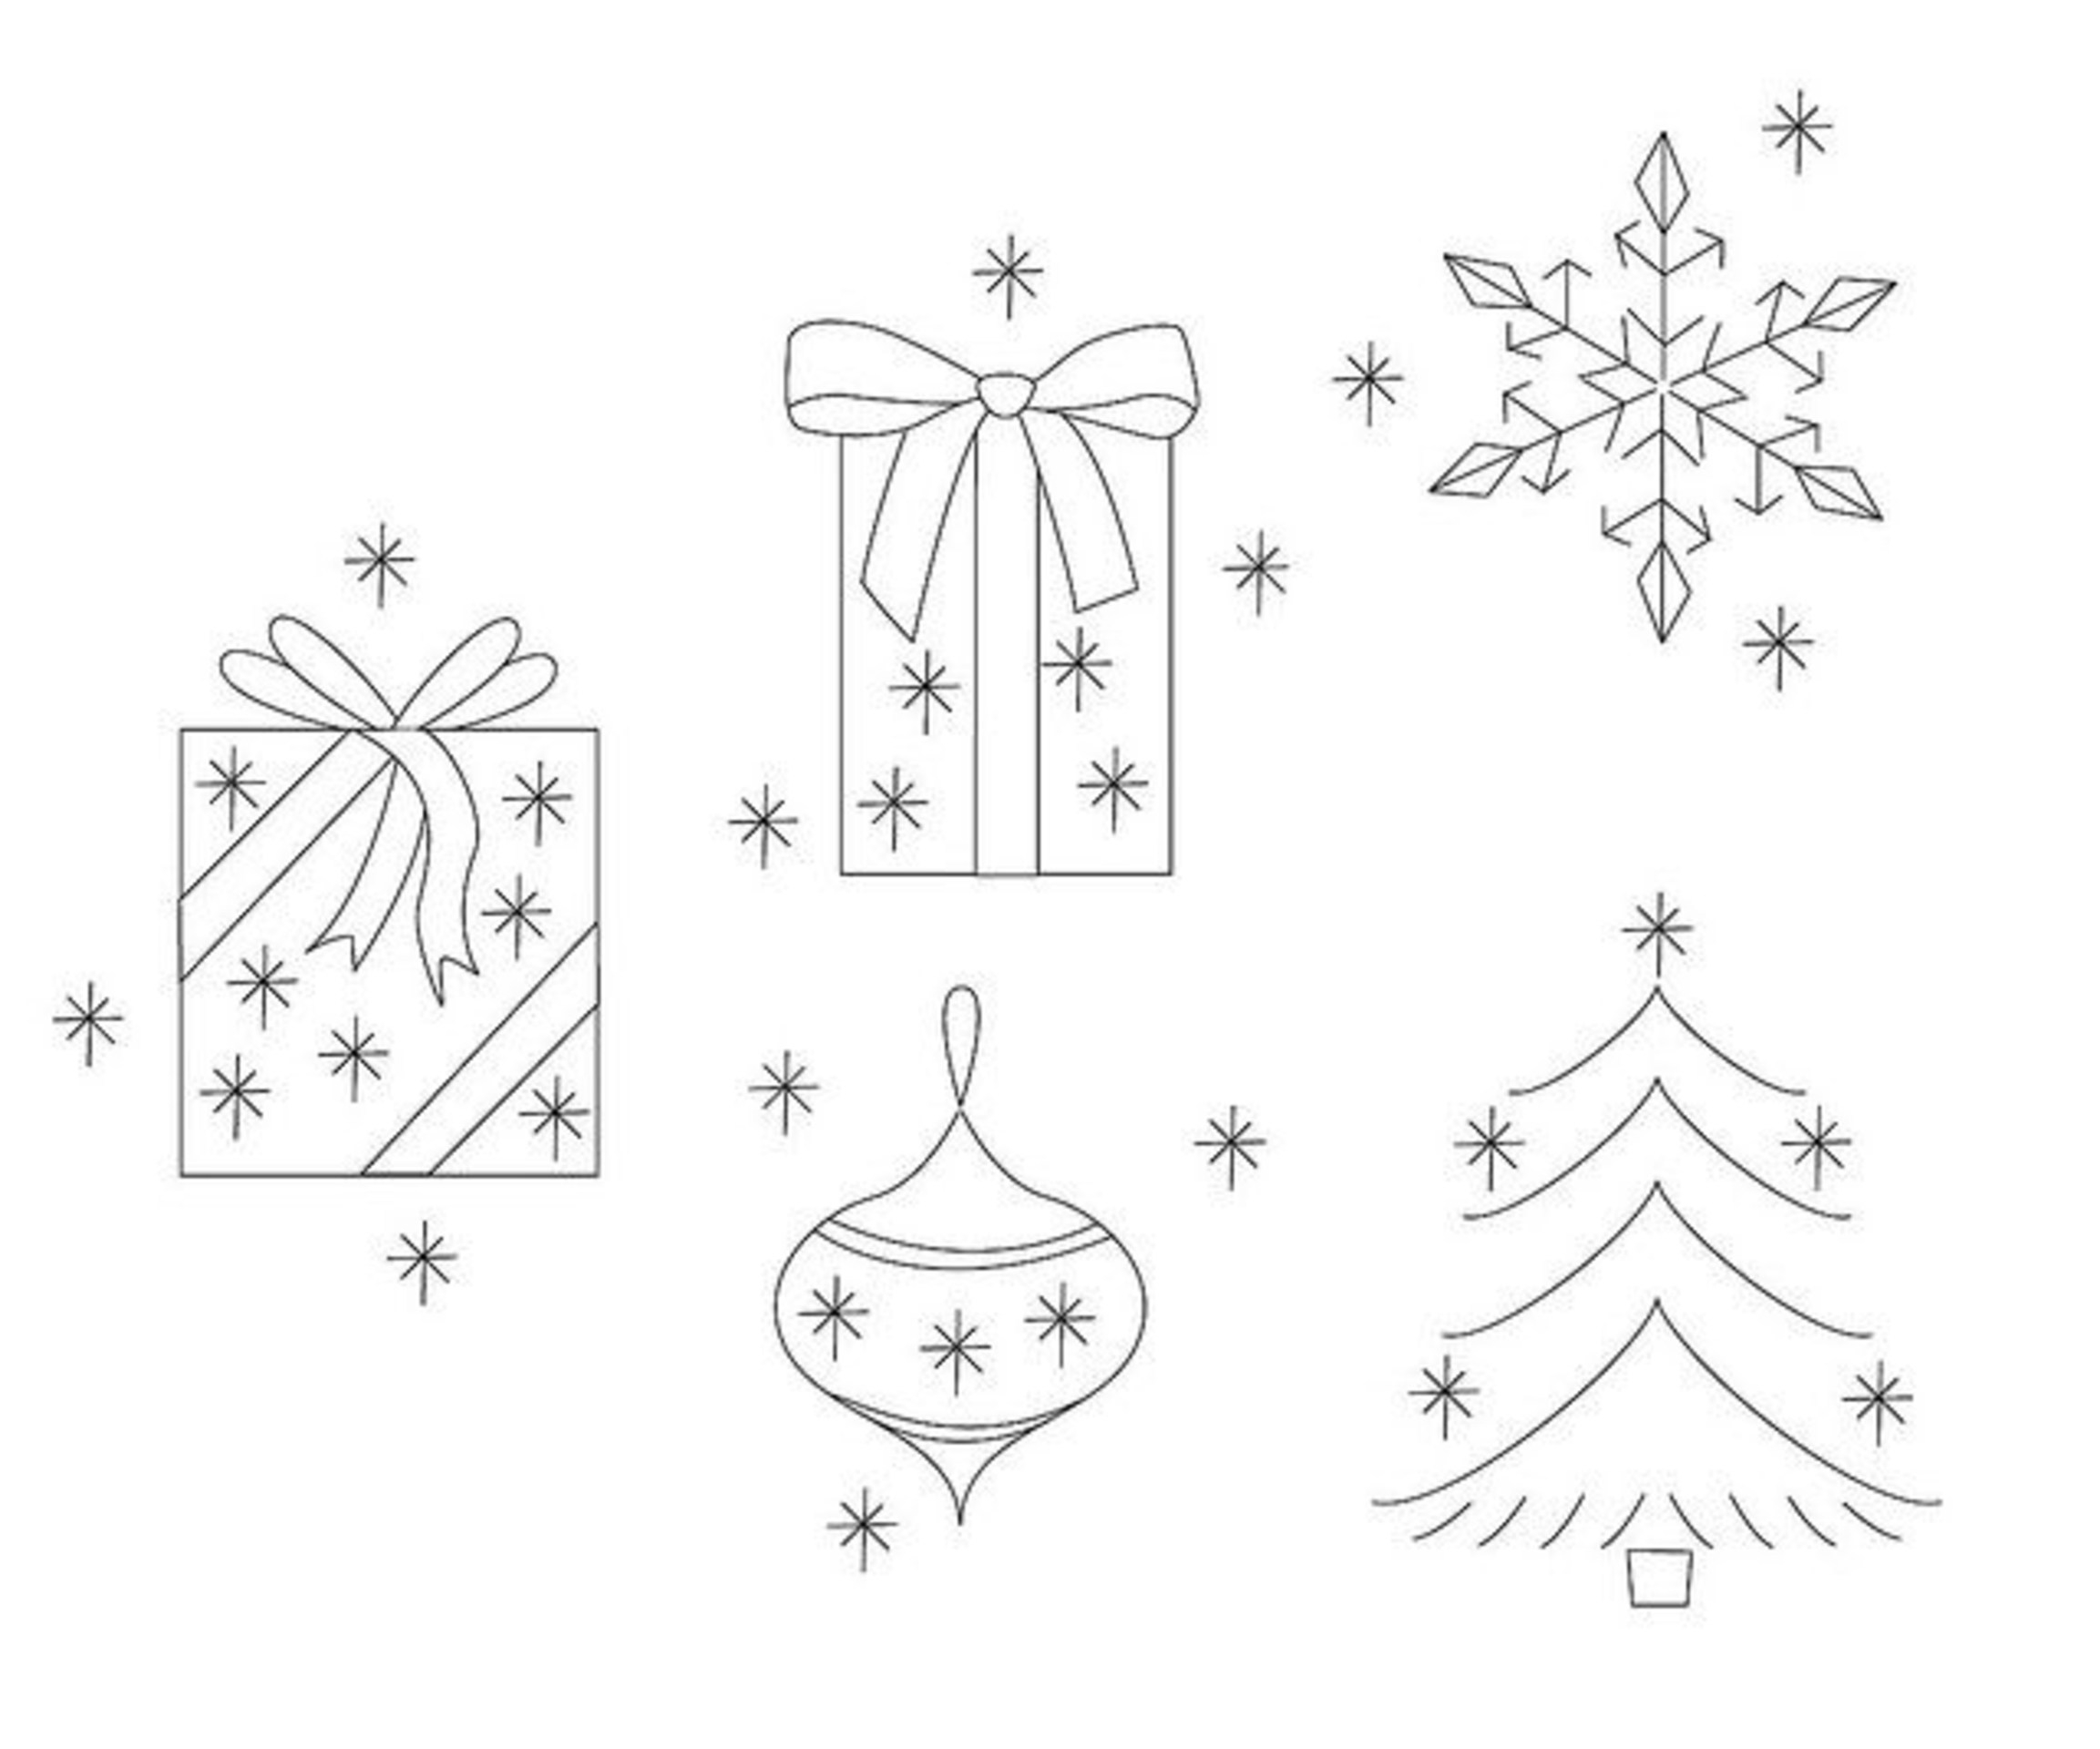 Embroidery Christmas Patterns 98577375 Christmas Embroidery Patterns What Katie Does Via Flickr